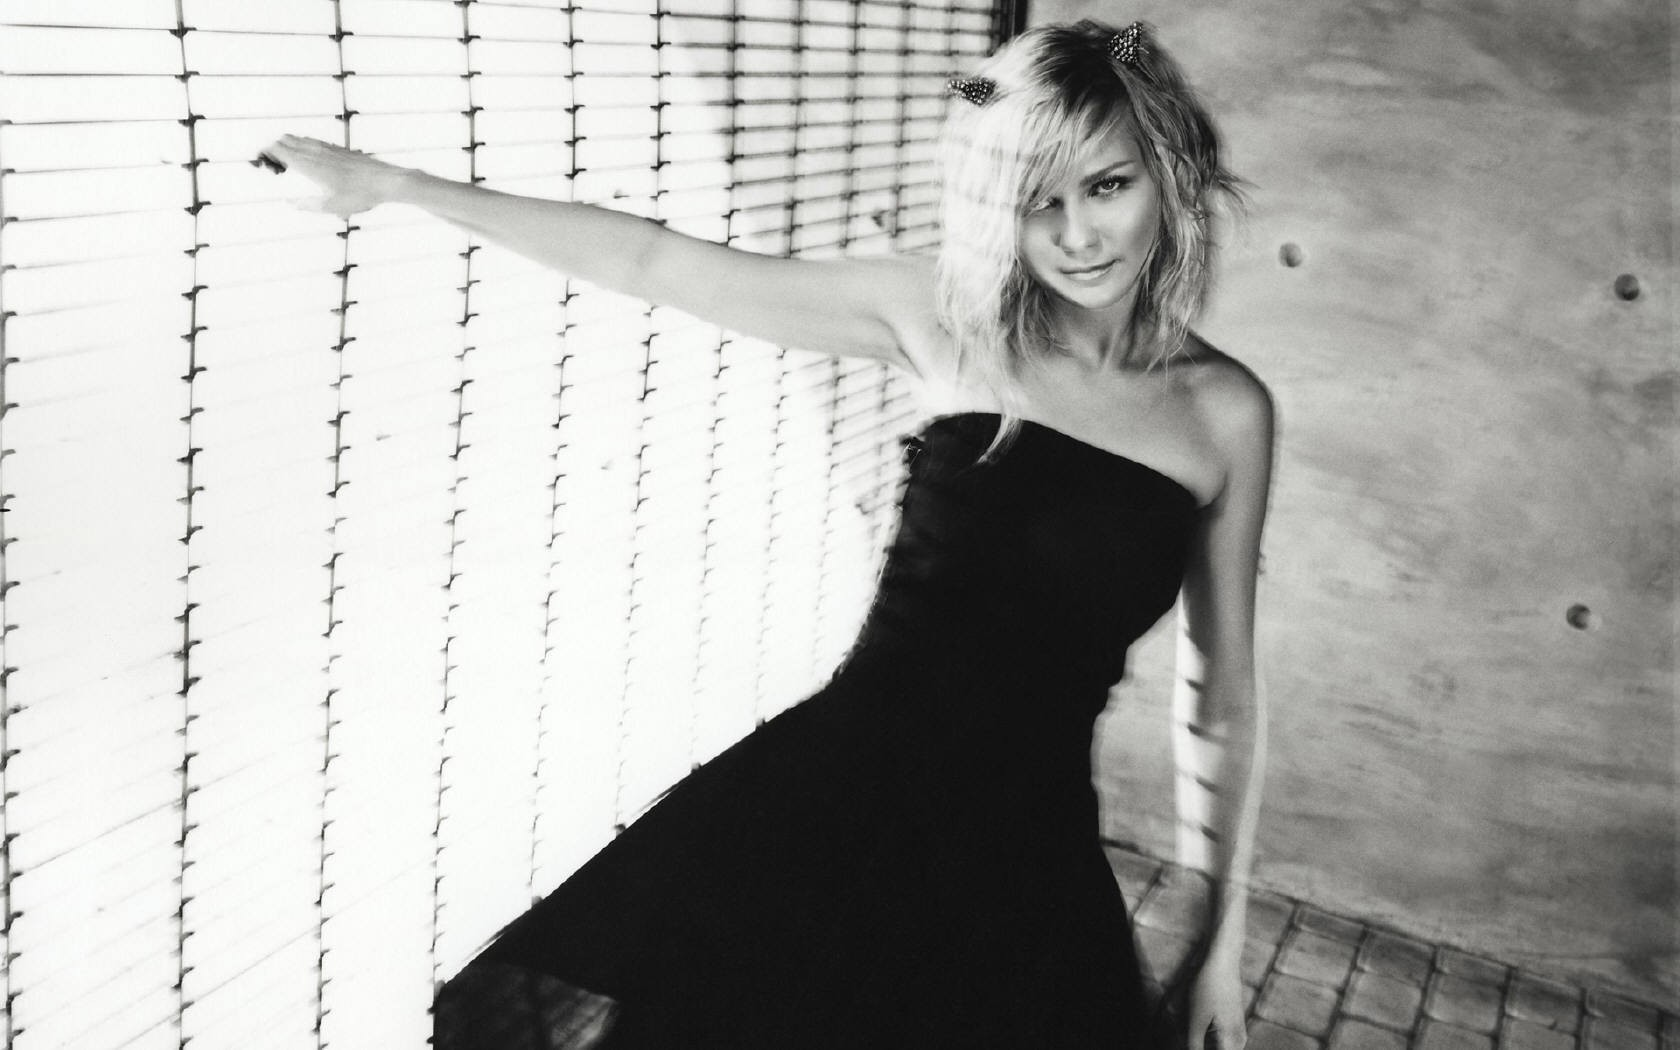 woman Kirsten Dunst monochrome HD Wallpaper